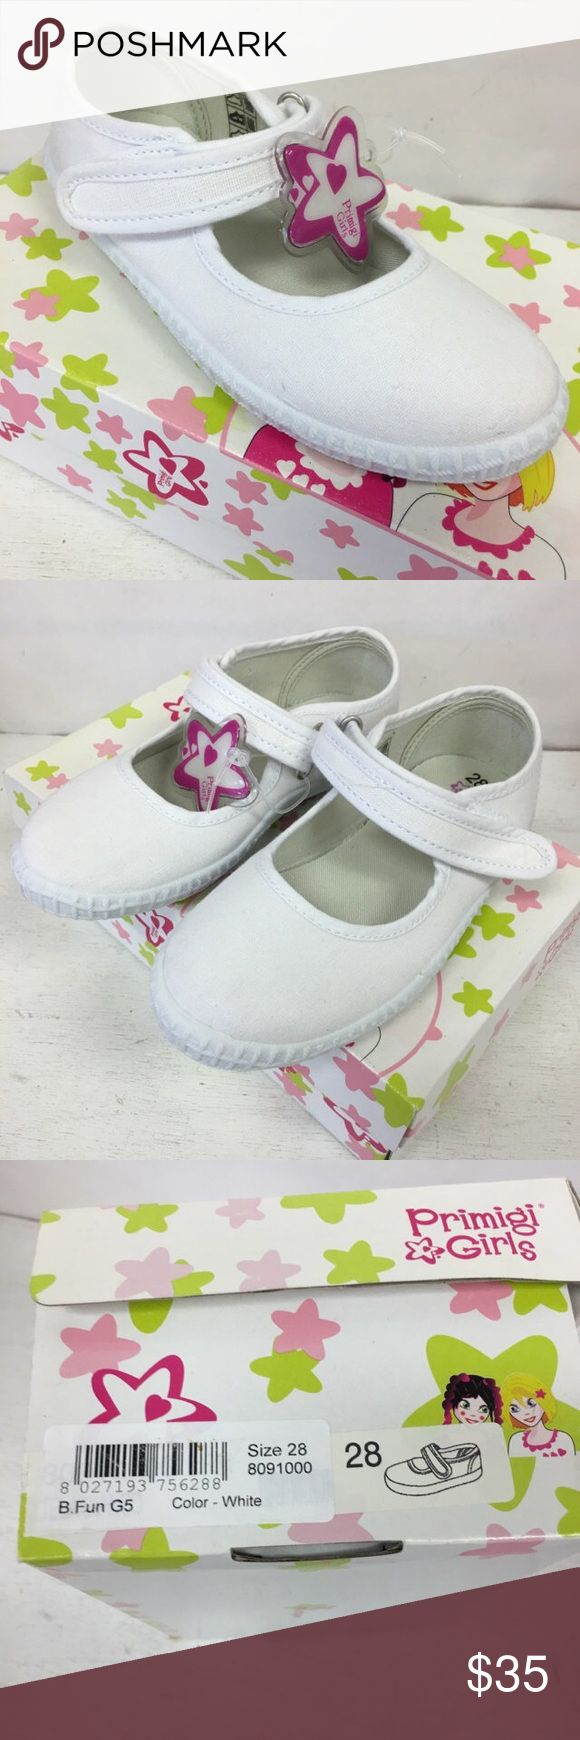 Primigi B.Fun White Mary Jane Canvas Sneakers Shoe Primigi B.Fun White Mary Jane Canvas Sneakers Shoes NEW NIB 28 11  Beautiful canvas sneakers/Mary Janes from Primigi.  Size is Euro 28 or approx 11 US.  New in box.  #white #maryjanes #maryjane #whiteshoes #ilovemywhiteshoes #canvas #sneakers #kicks #coolkicks Primigi Shoes Sneakers